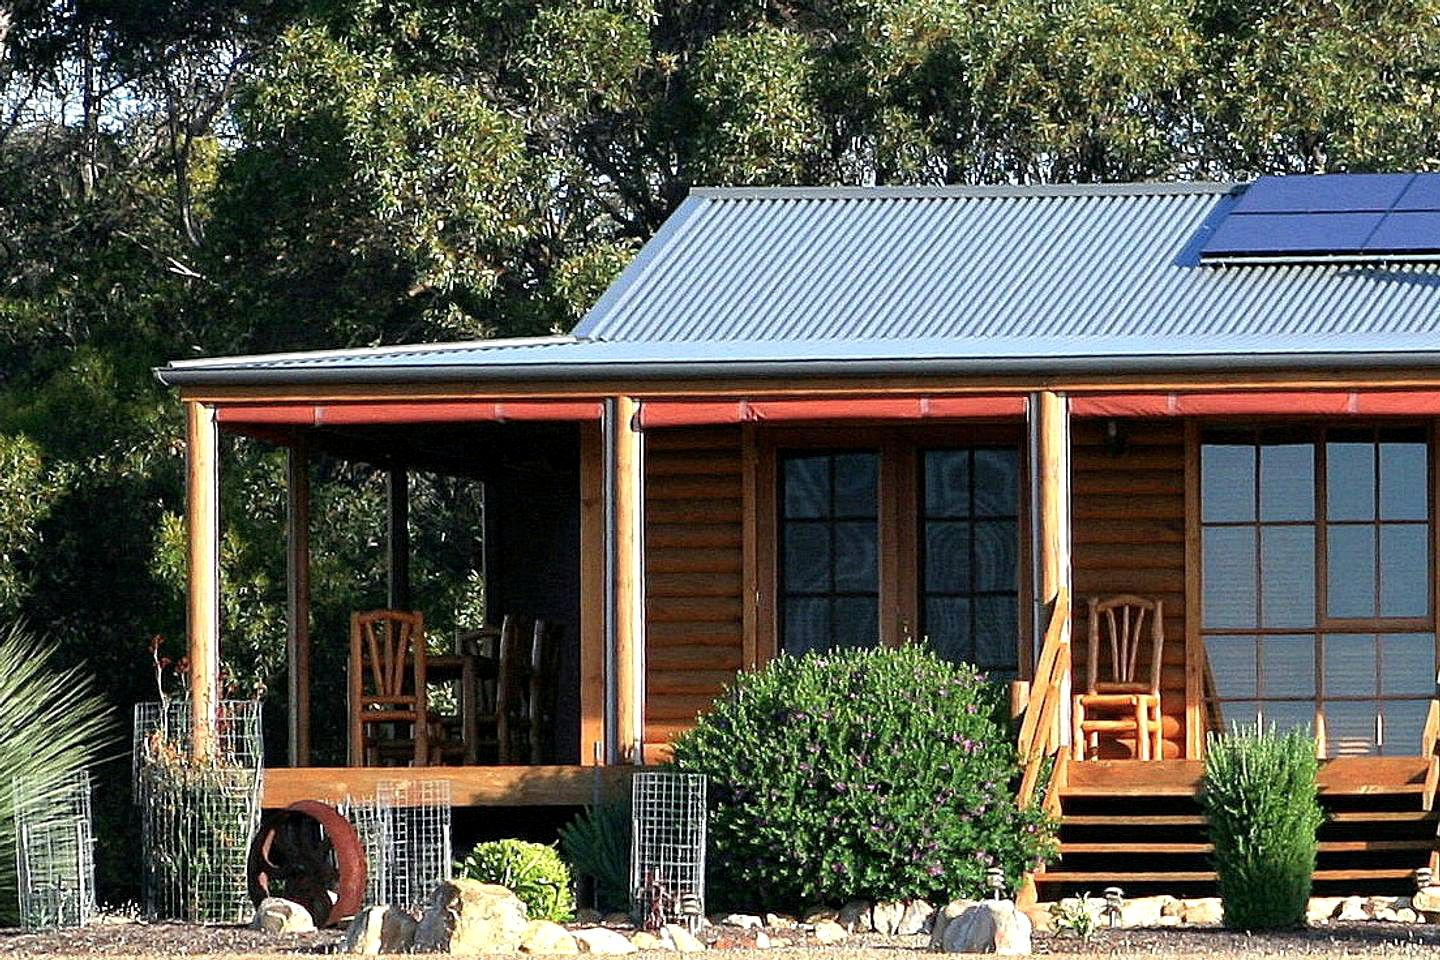 Log Cabins (Kangaroo Island, South Australia, Australia)